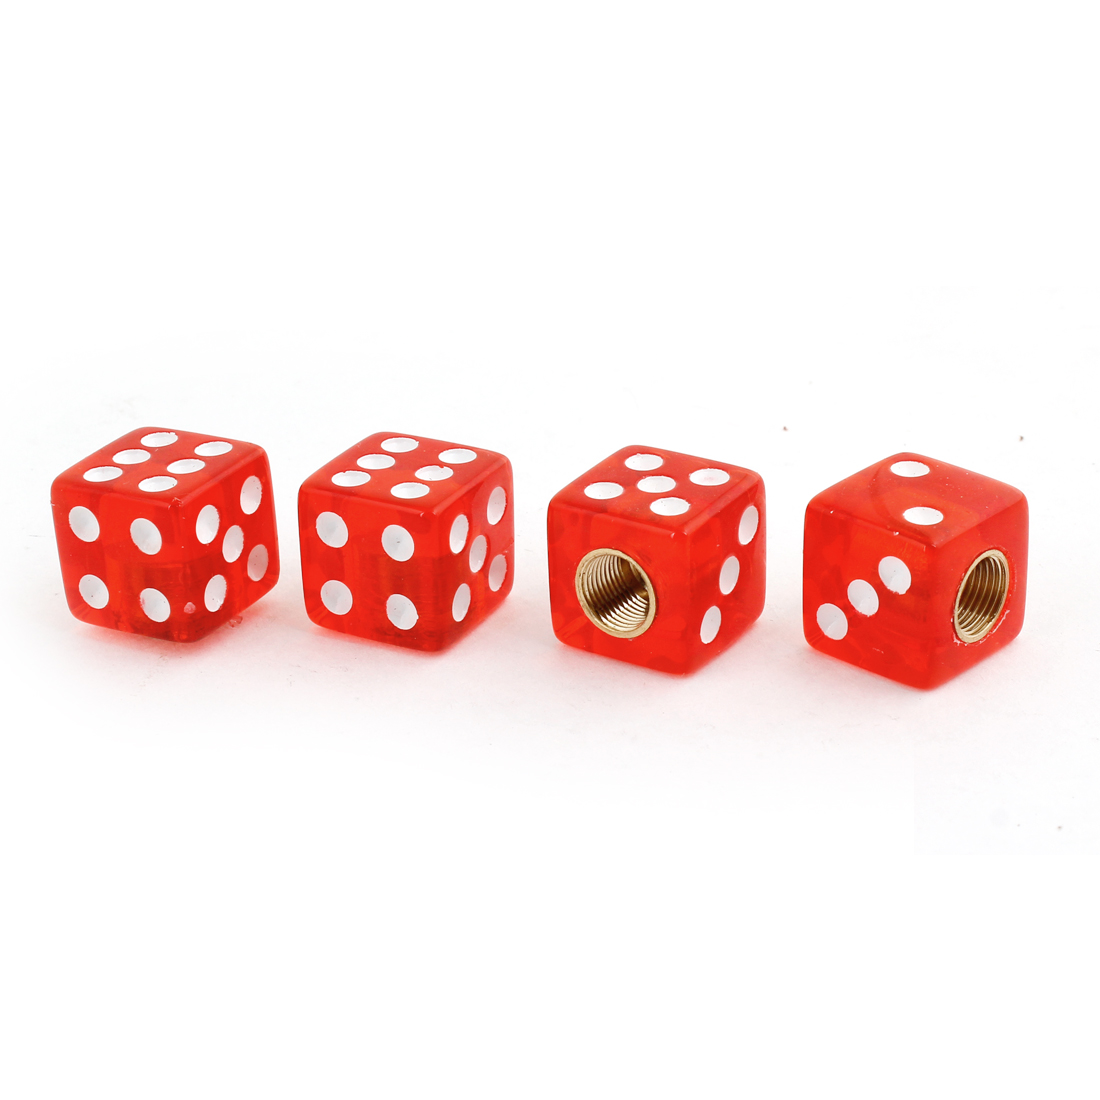 Vehicle Car Red Dice Shape Tire Valve Wheel Stem Cap Cover 4 Pcs